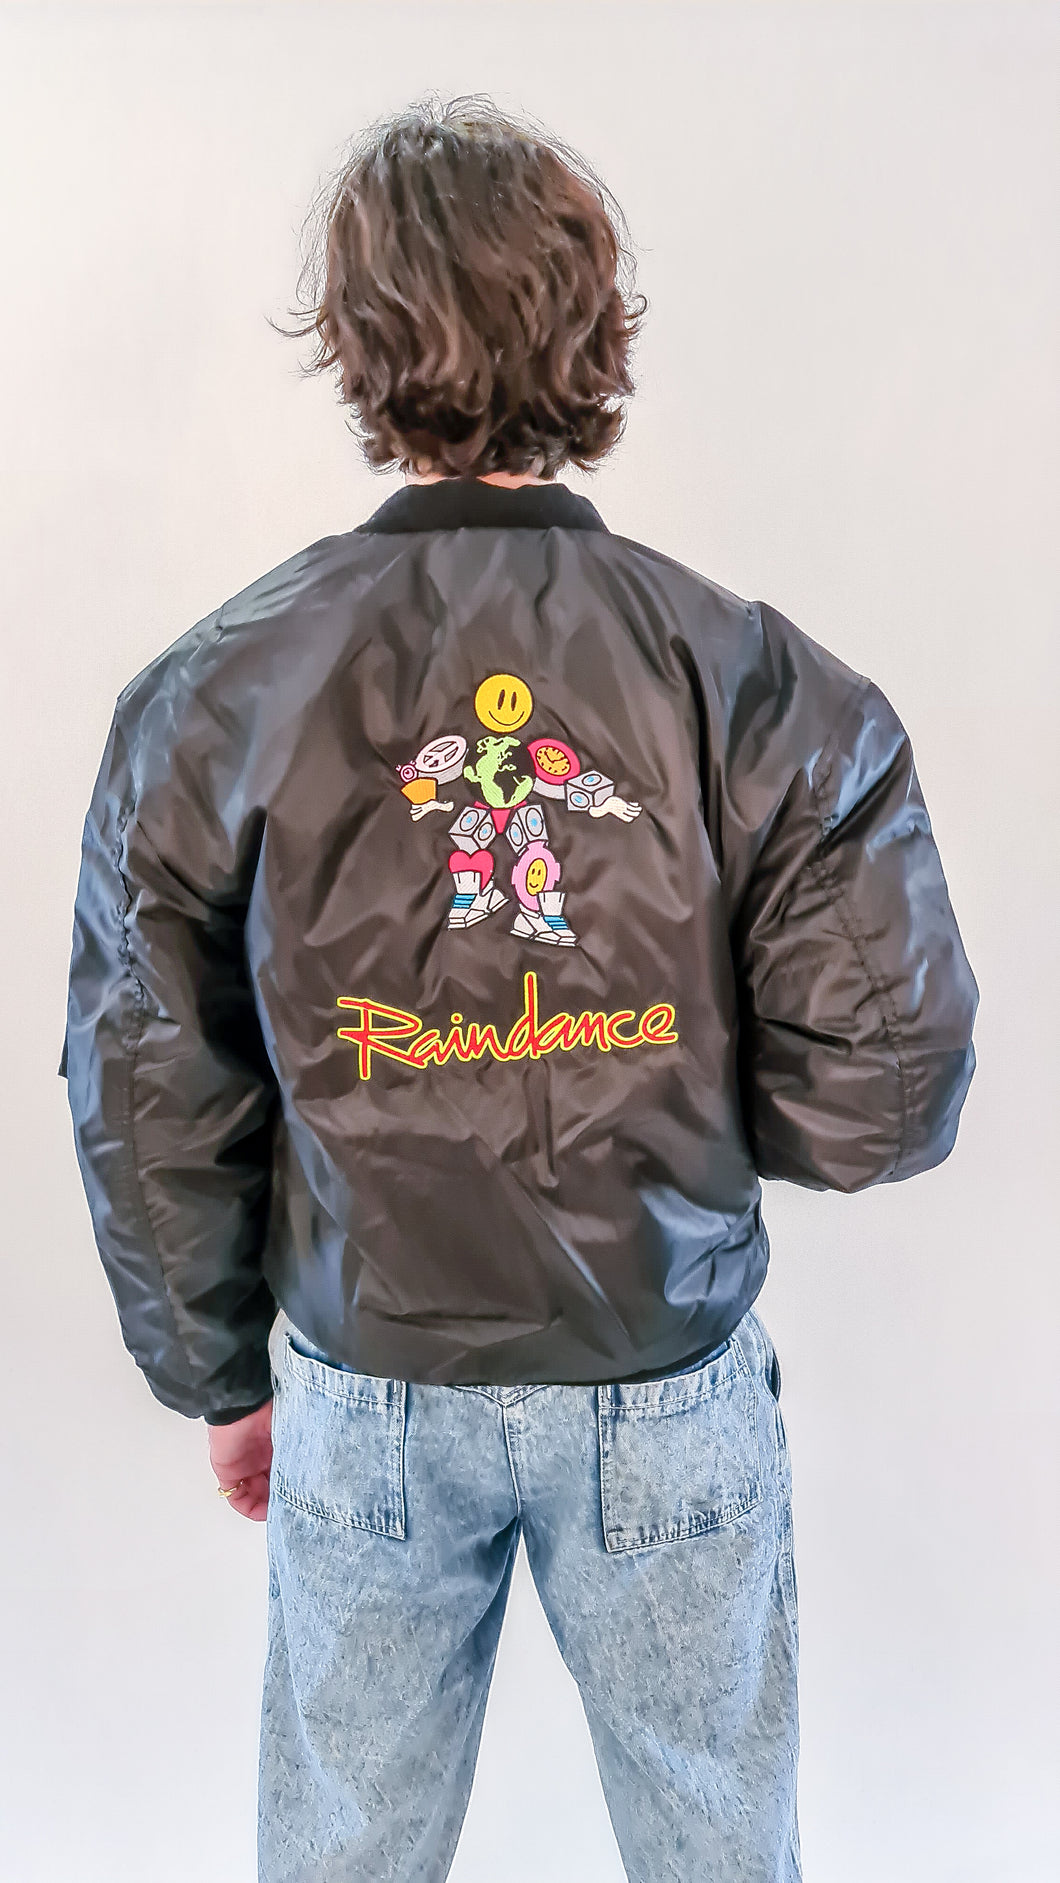 Raindance MA-1 Bomber Jacket black